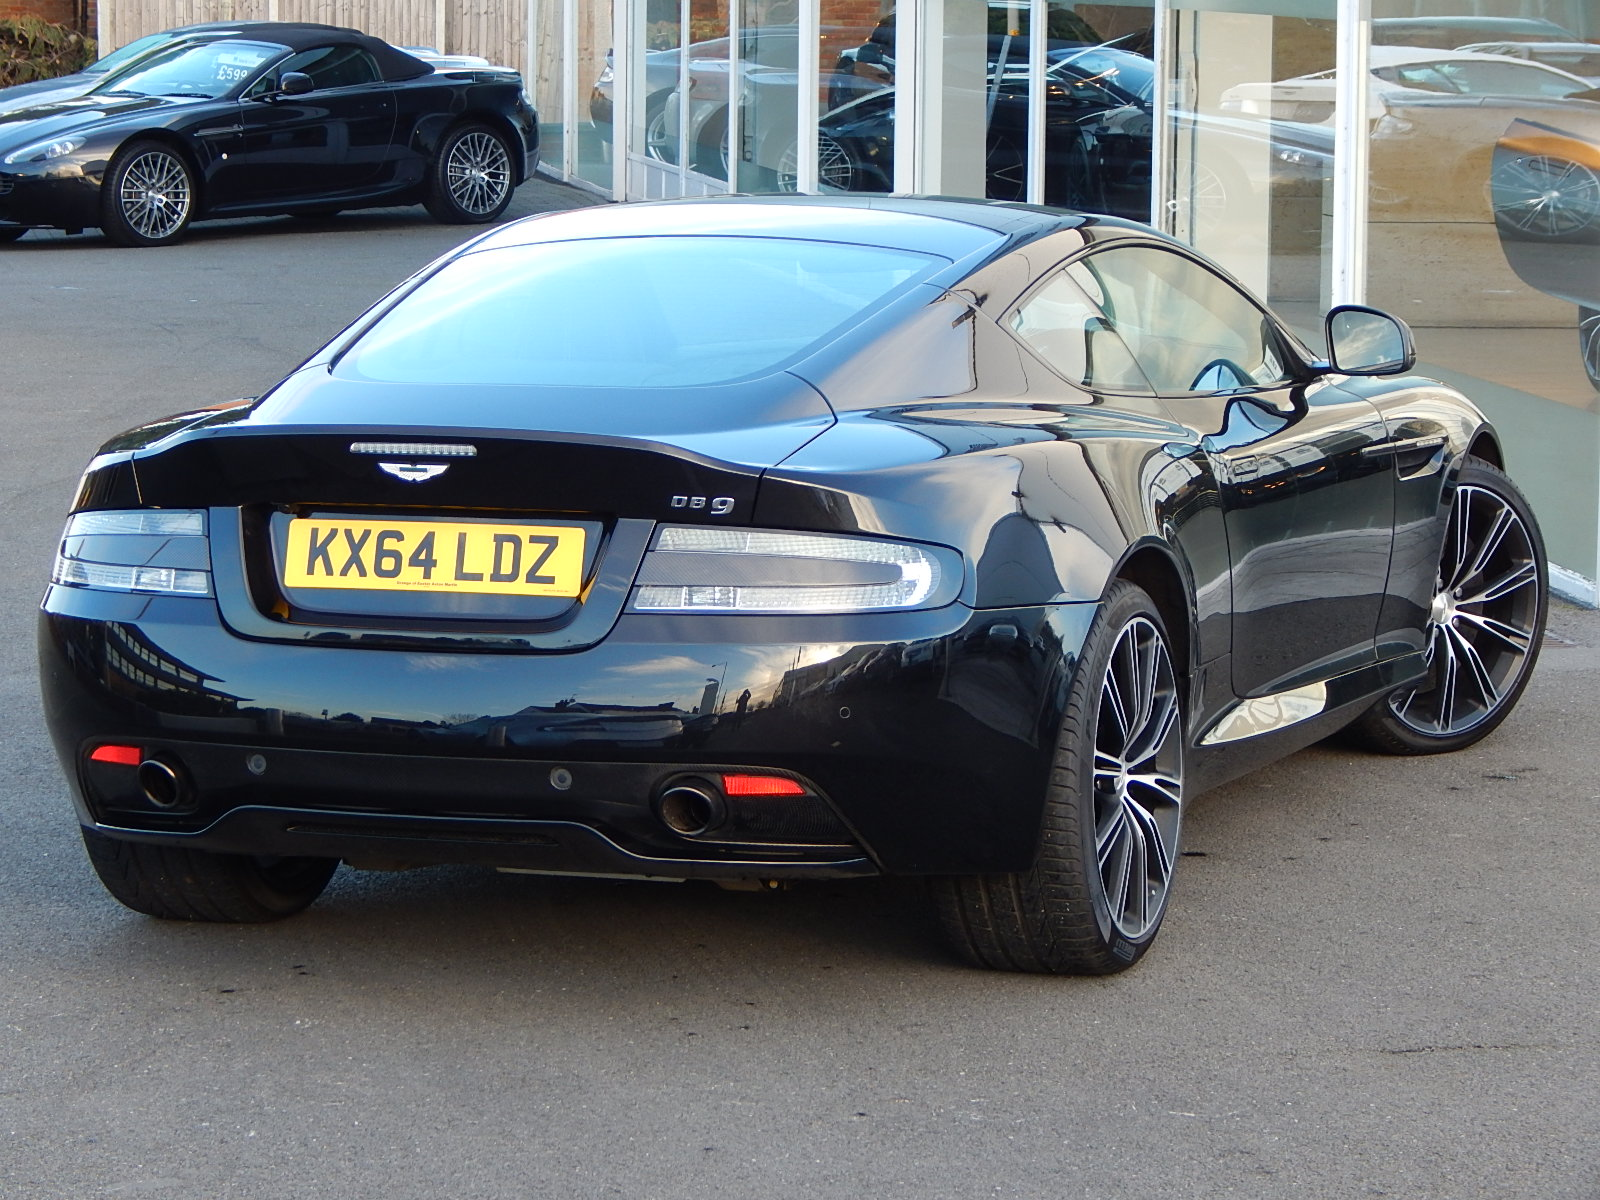 Aston Martin DB9 V12 2dr Touchtronic, Carbon Edition image 11